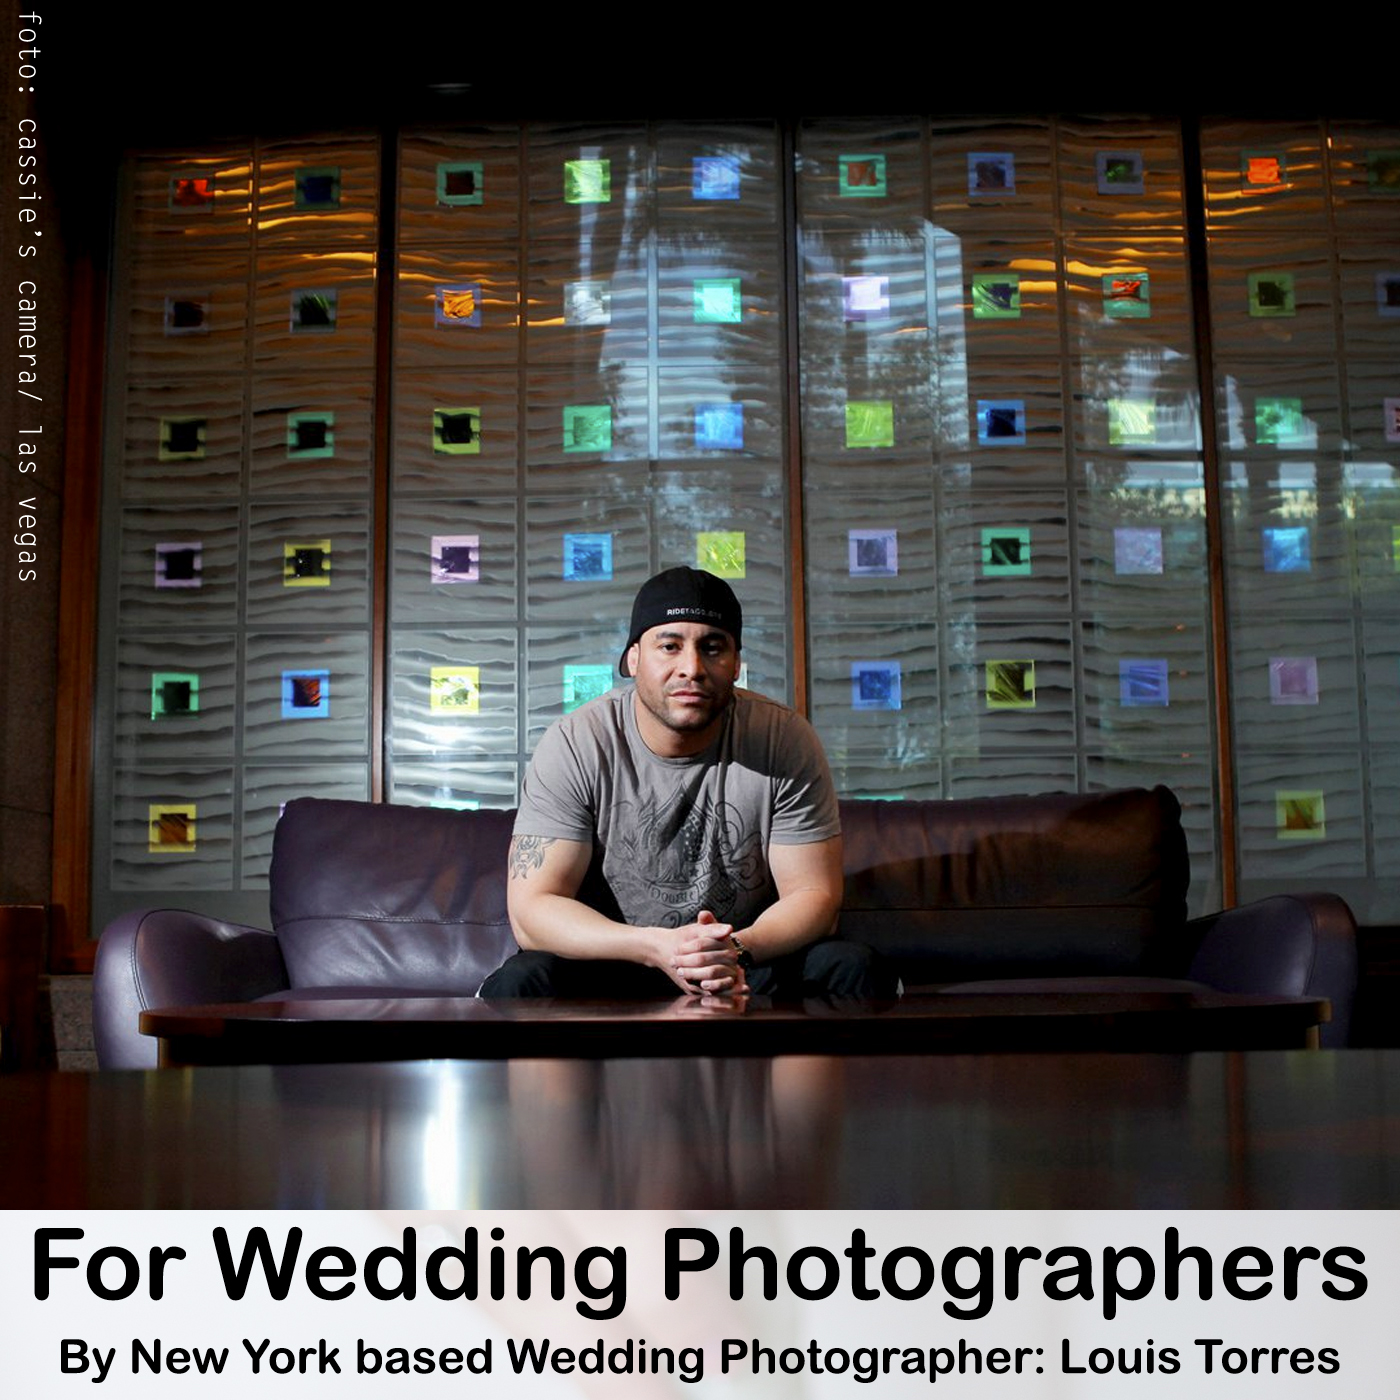 For Wedding Photographers